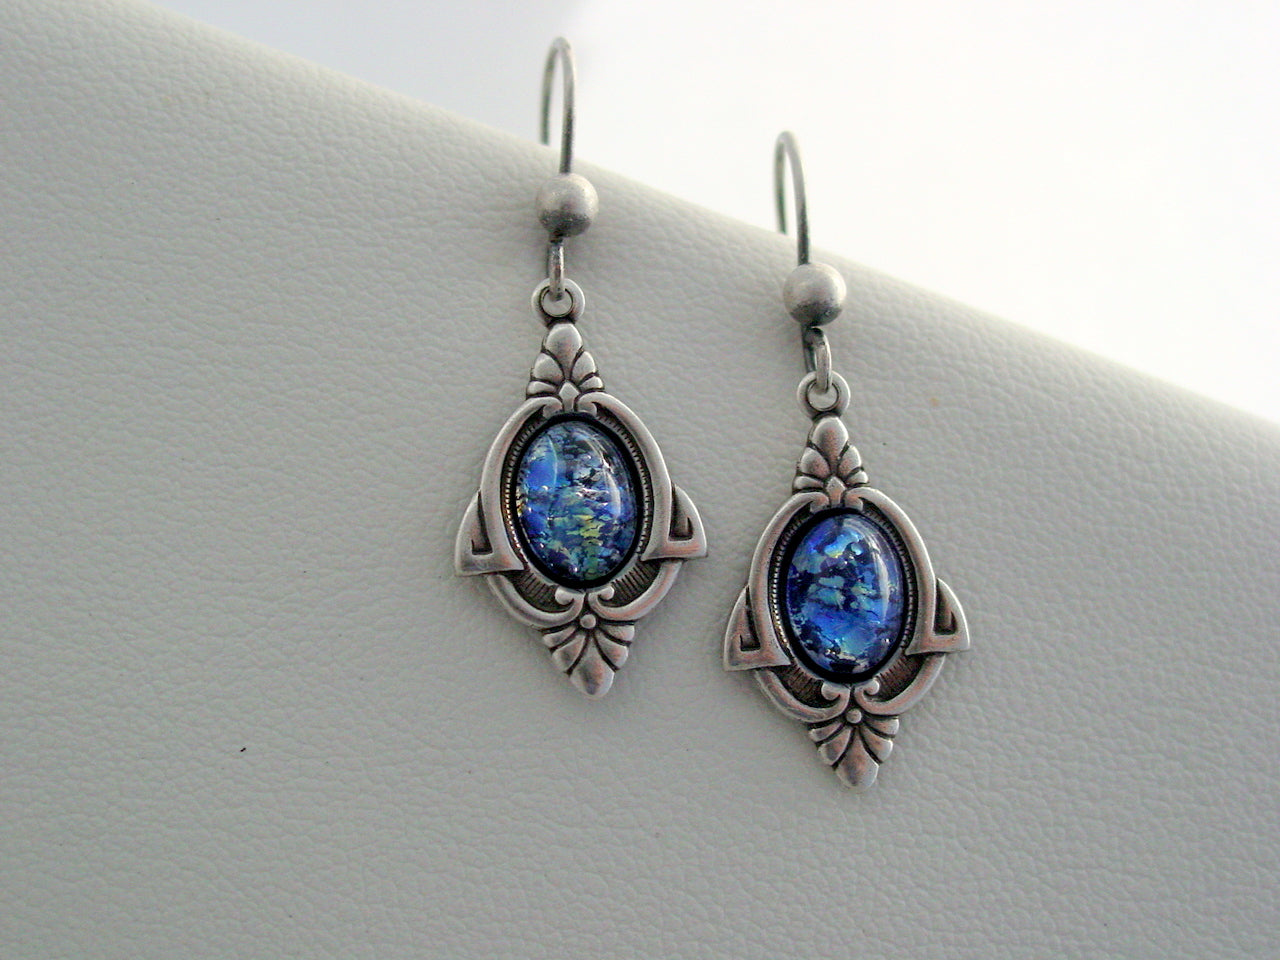 Art Deco Sea Blue Earrings, Fire Opal Earrings, Cobalt Blue Fire Opal Glass Earrings